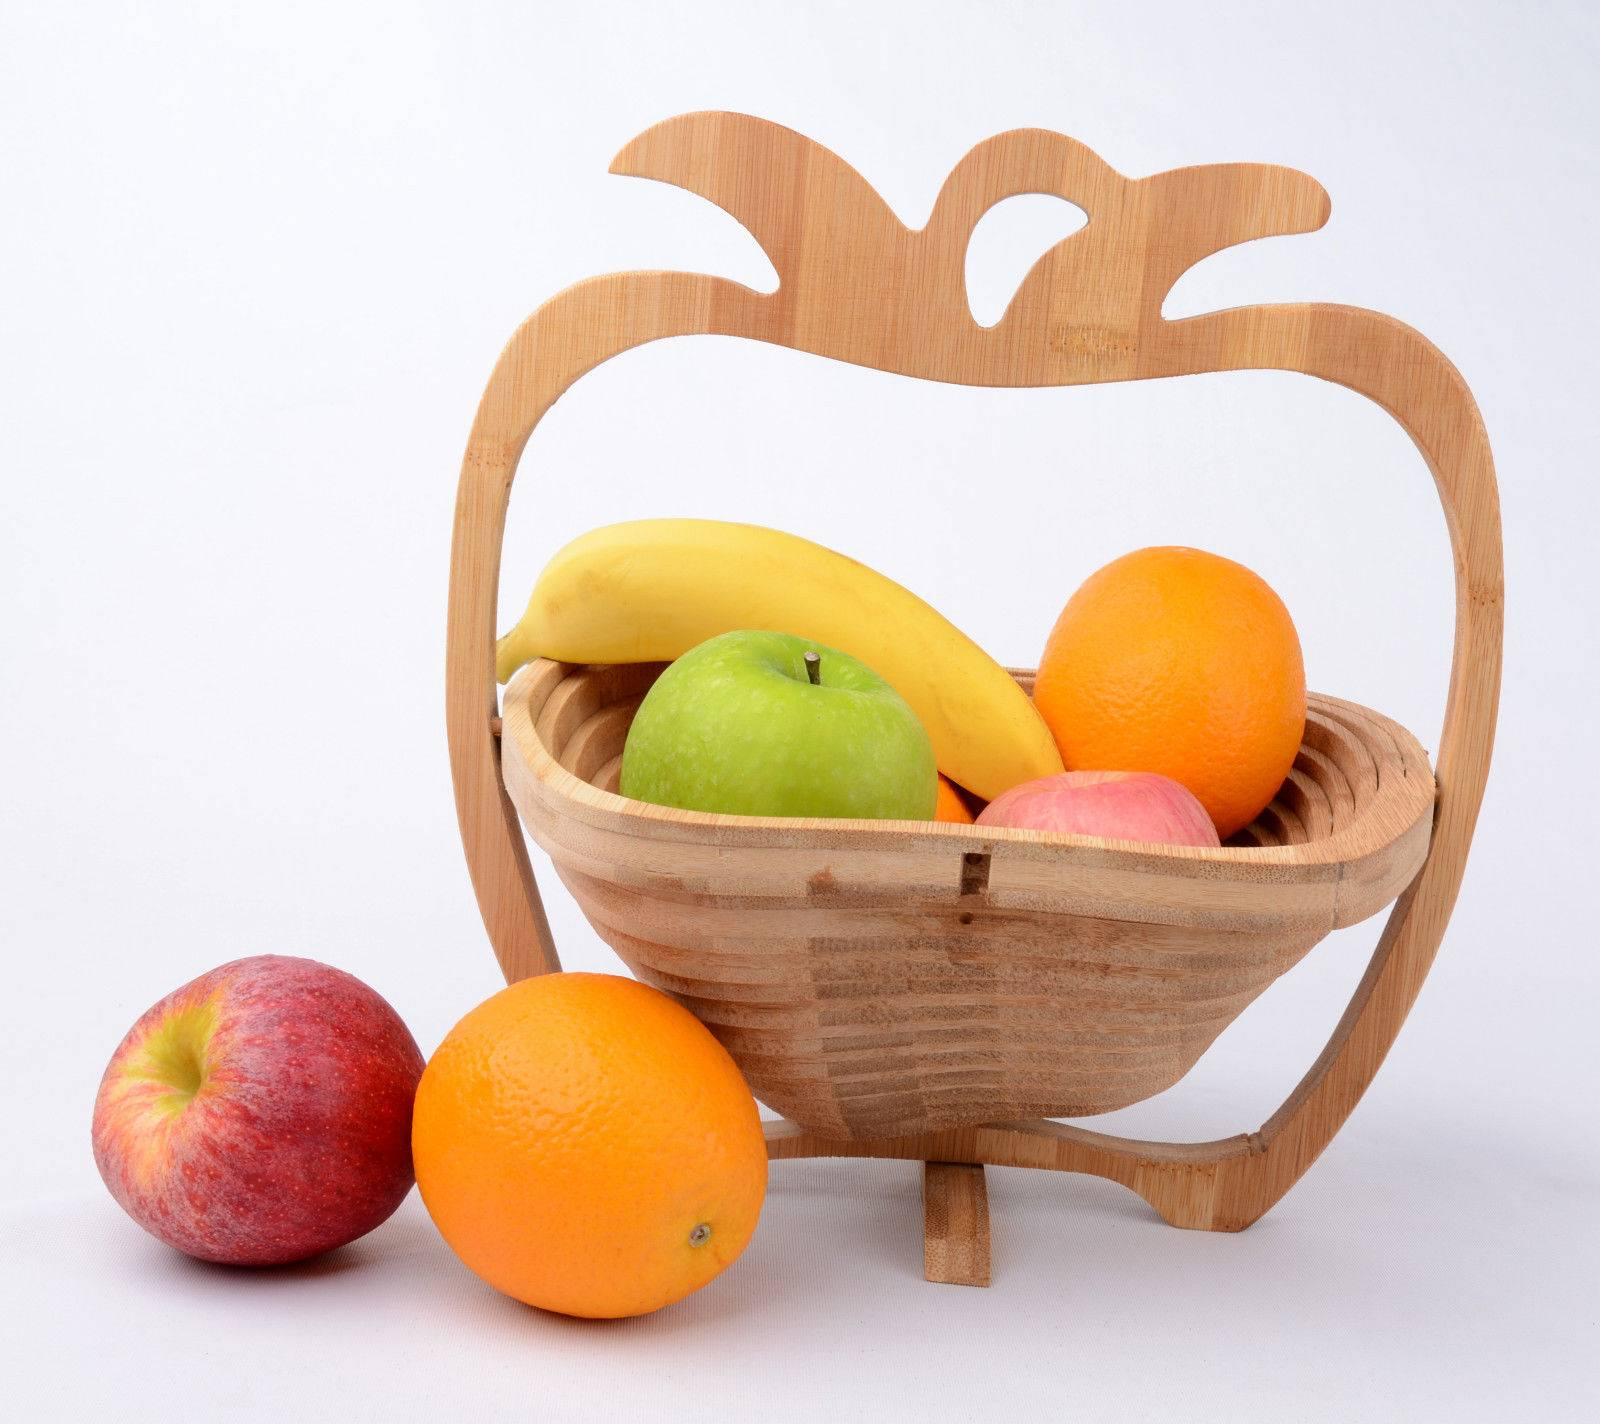 Apple Shaped Bamboo Wooden Collapsible Fruit Egg Basket